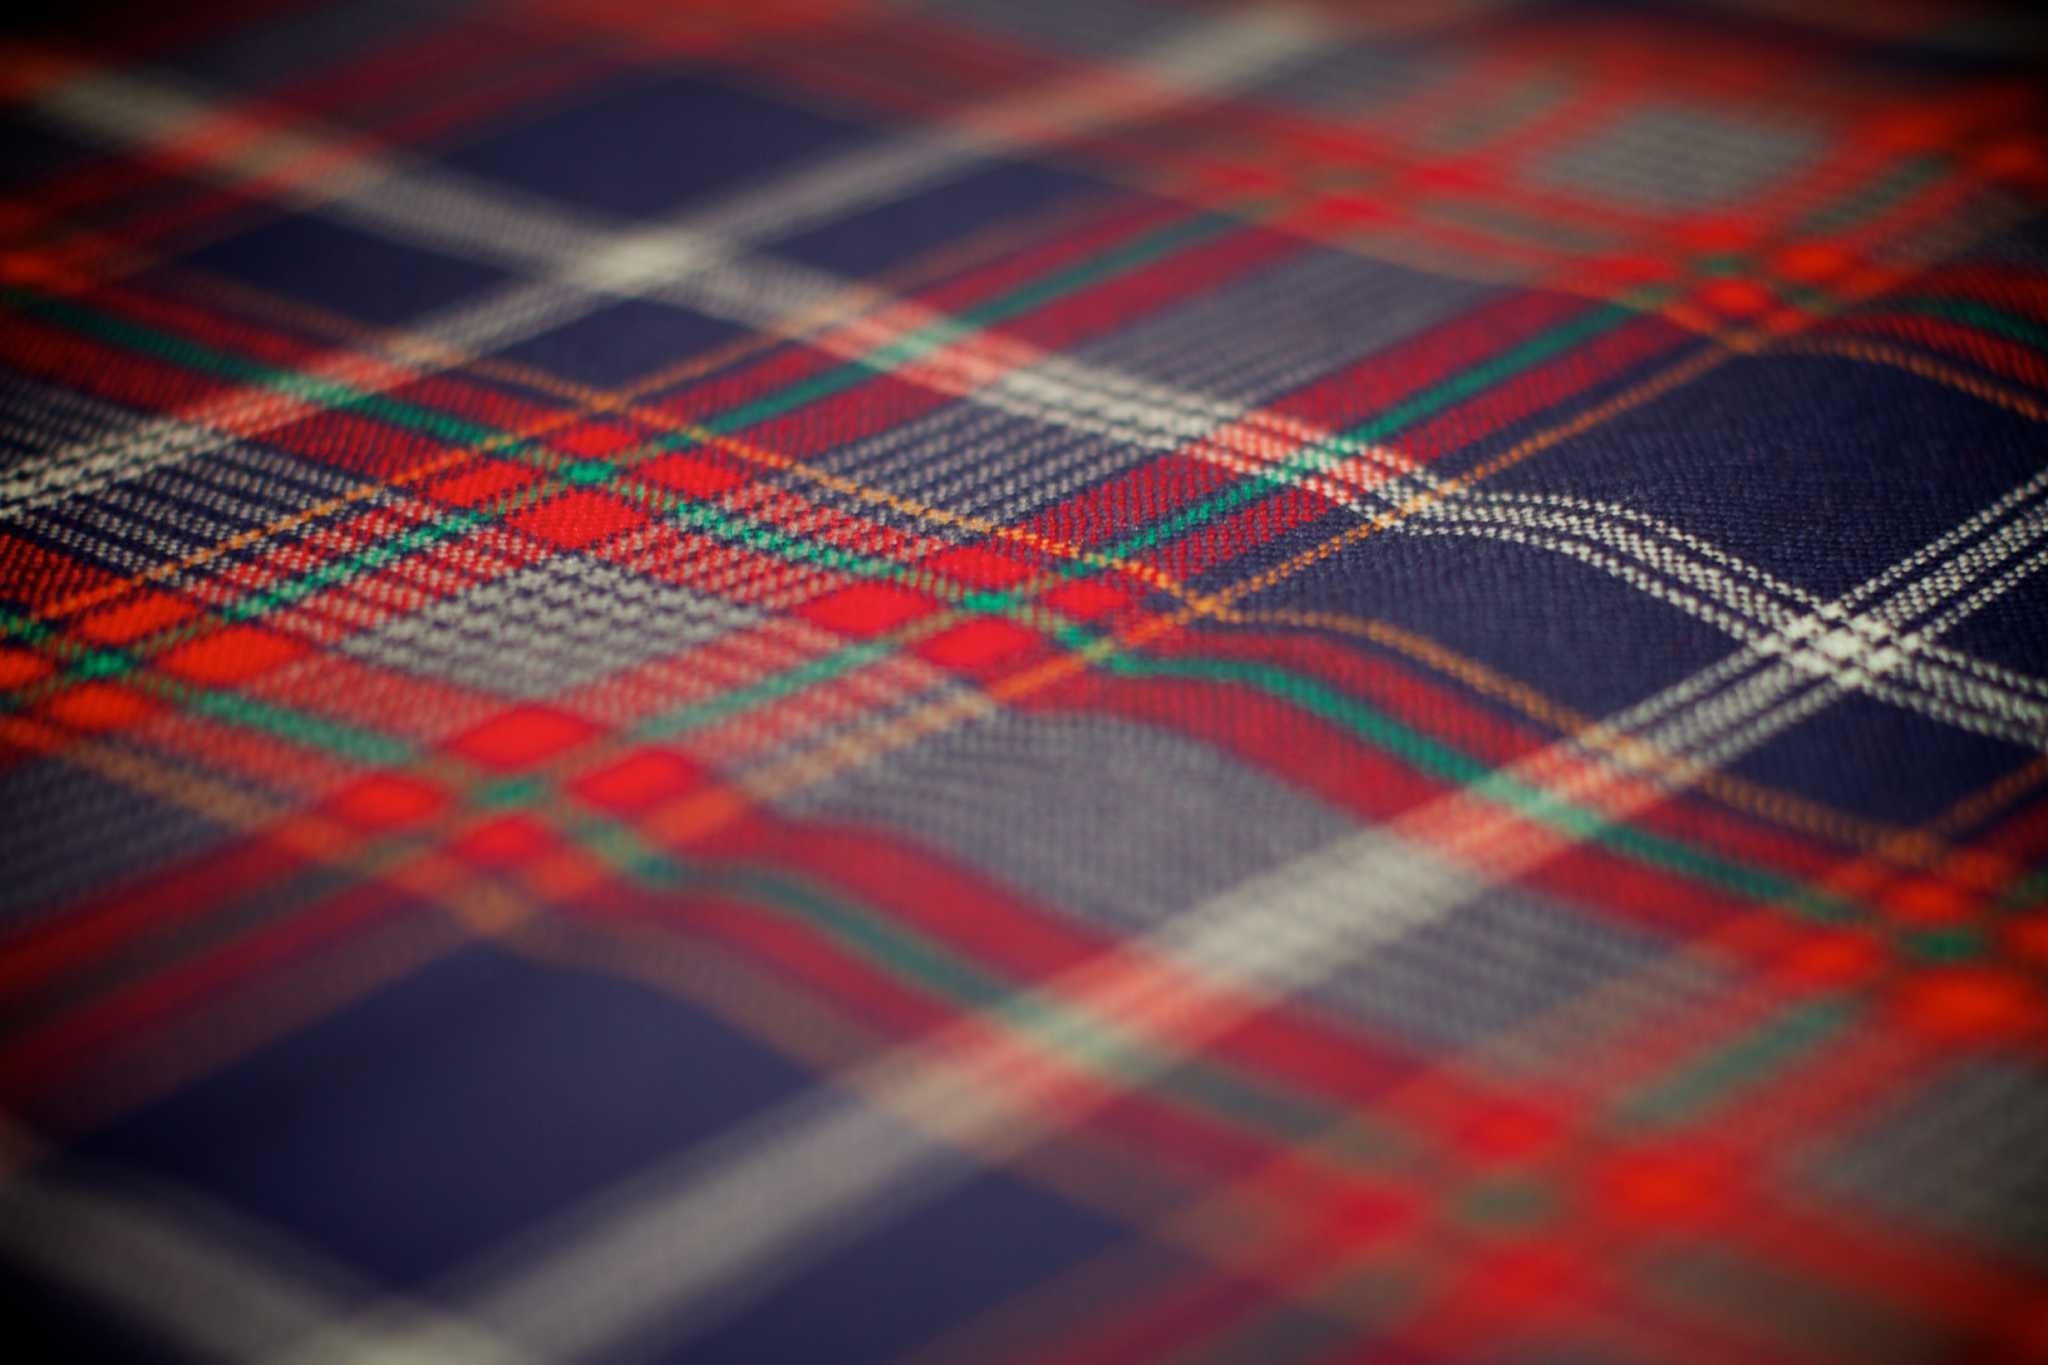 Today\'s tartans are runway ready - Connecticut Post